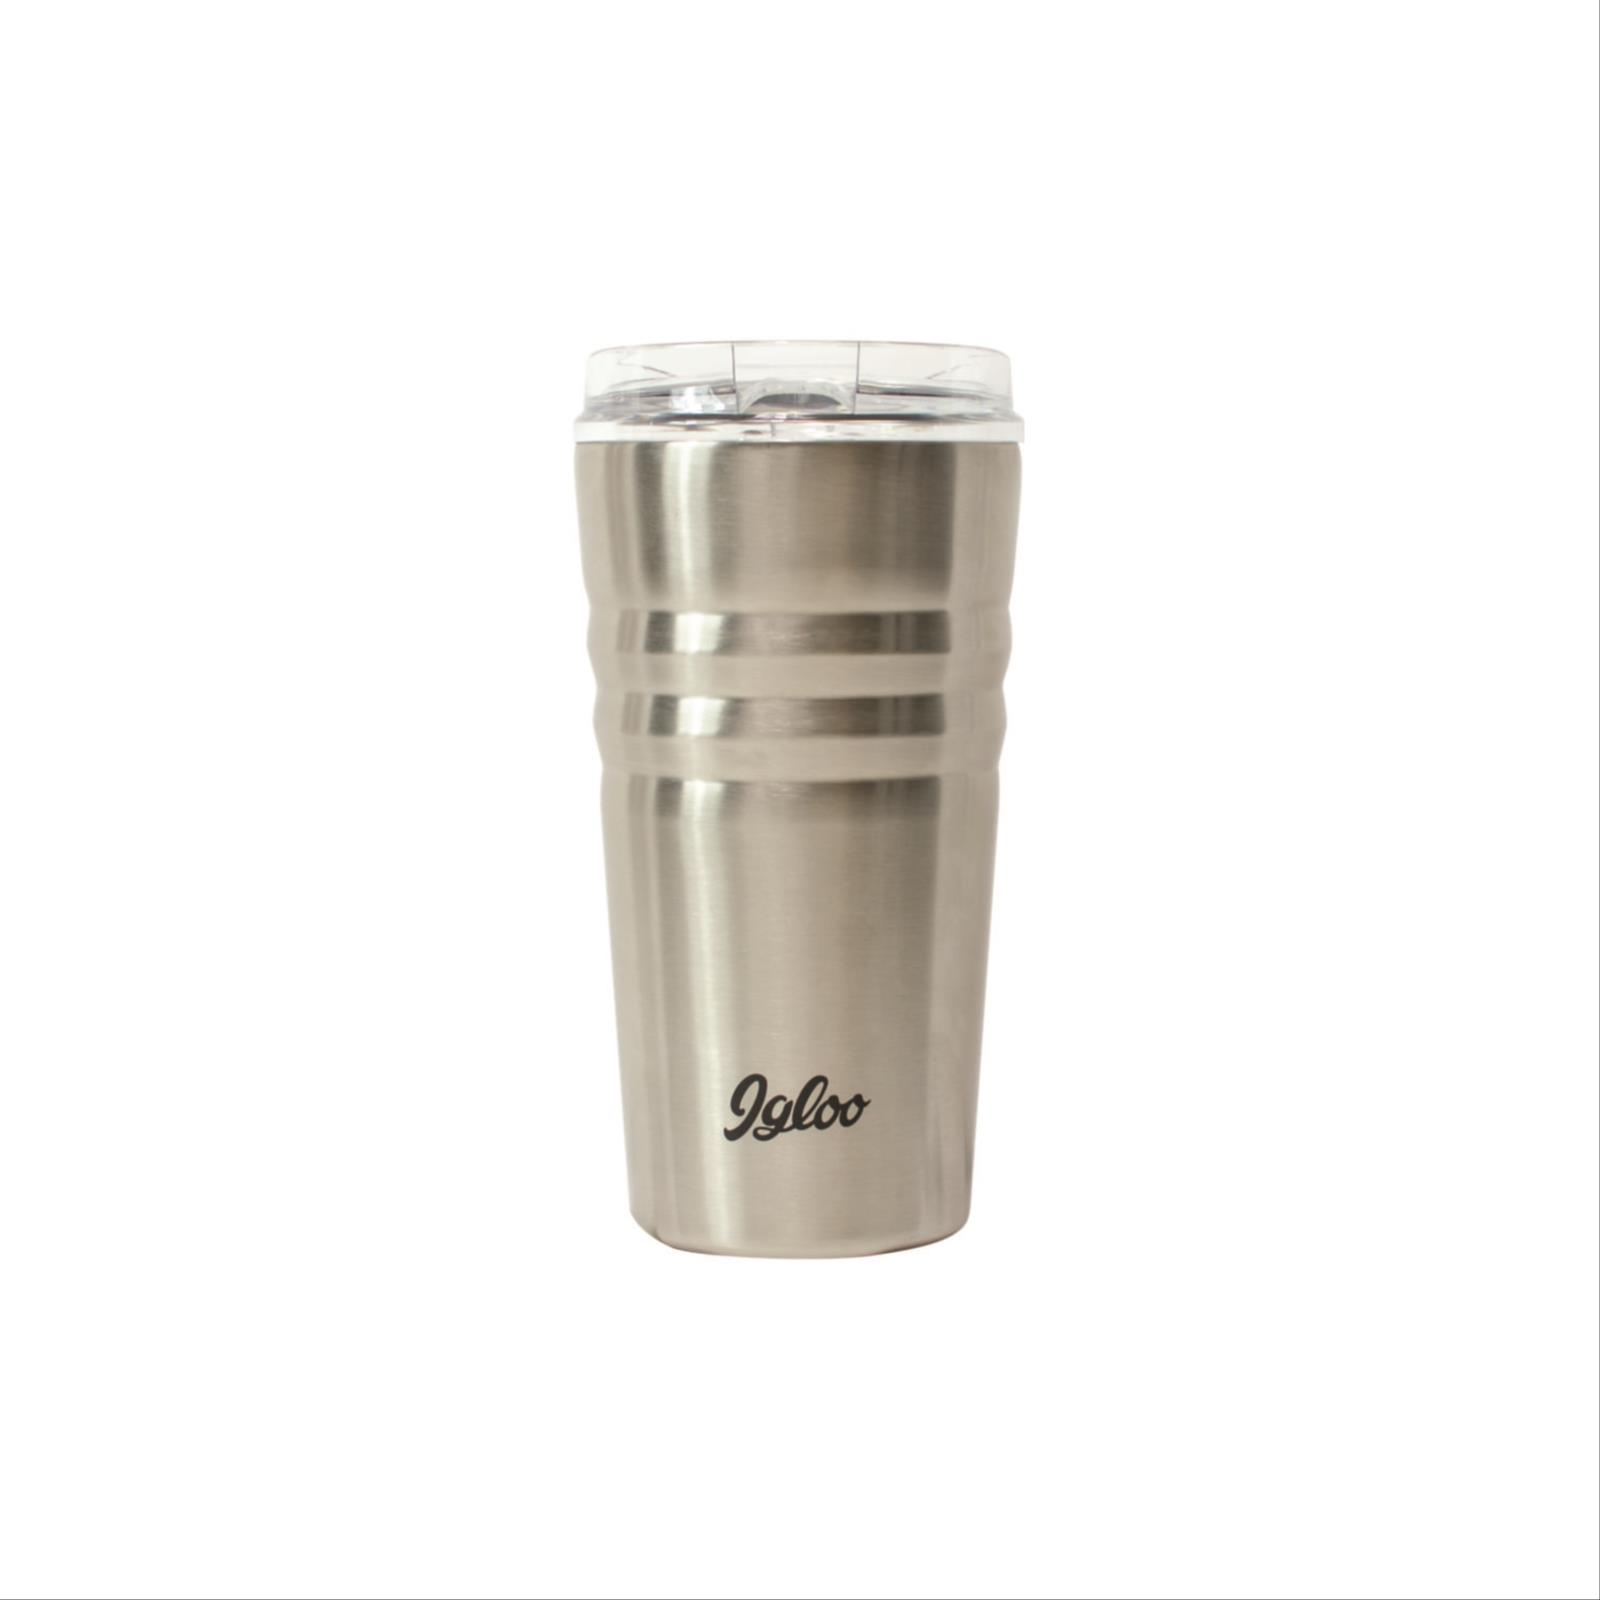 LEGACY™ Stainless Steel 16oz Insulated Tumbler